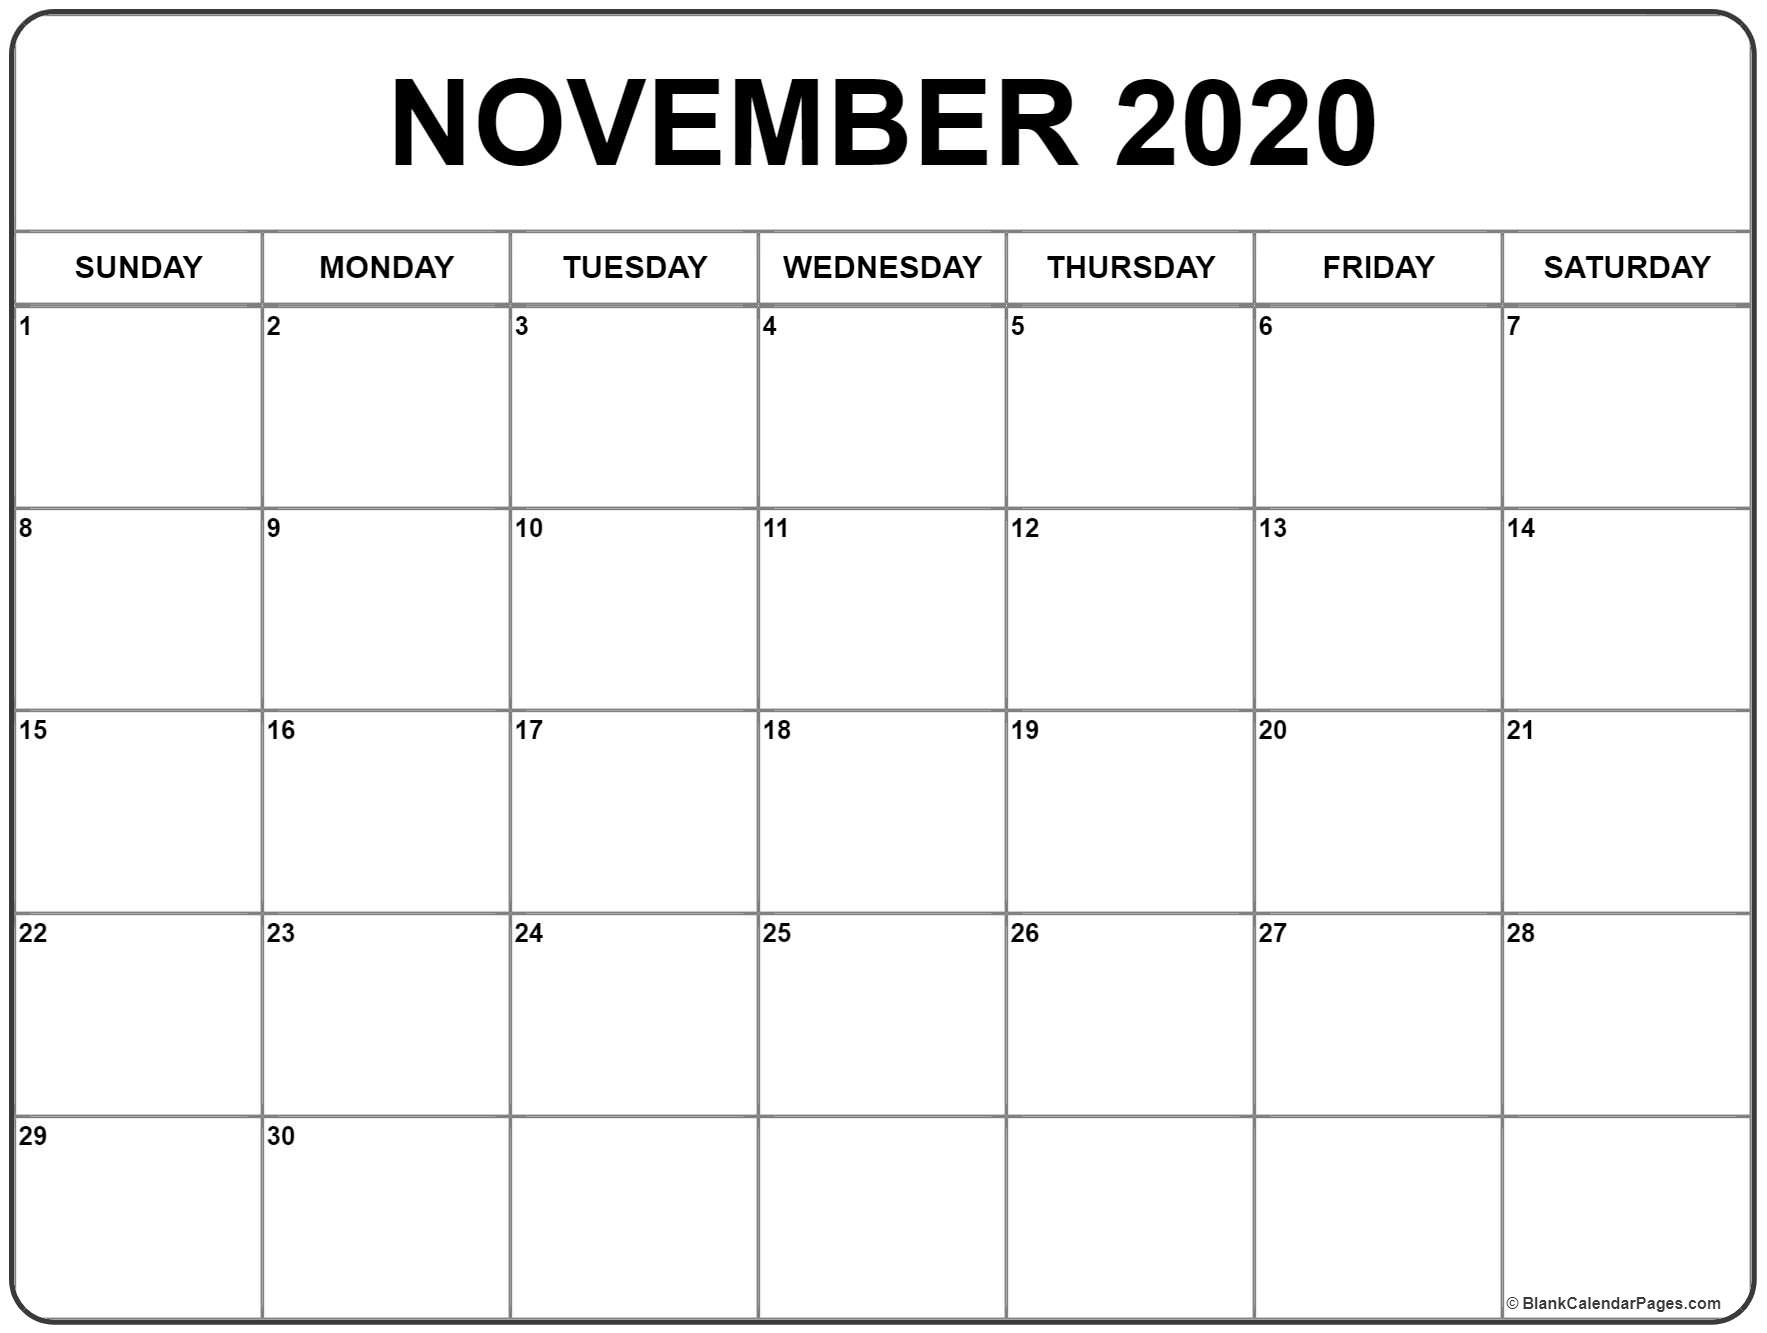 November 2020 Calendar | Free Printable Monthly Calendars_Blank Calendar Template November 2020